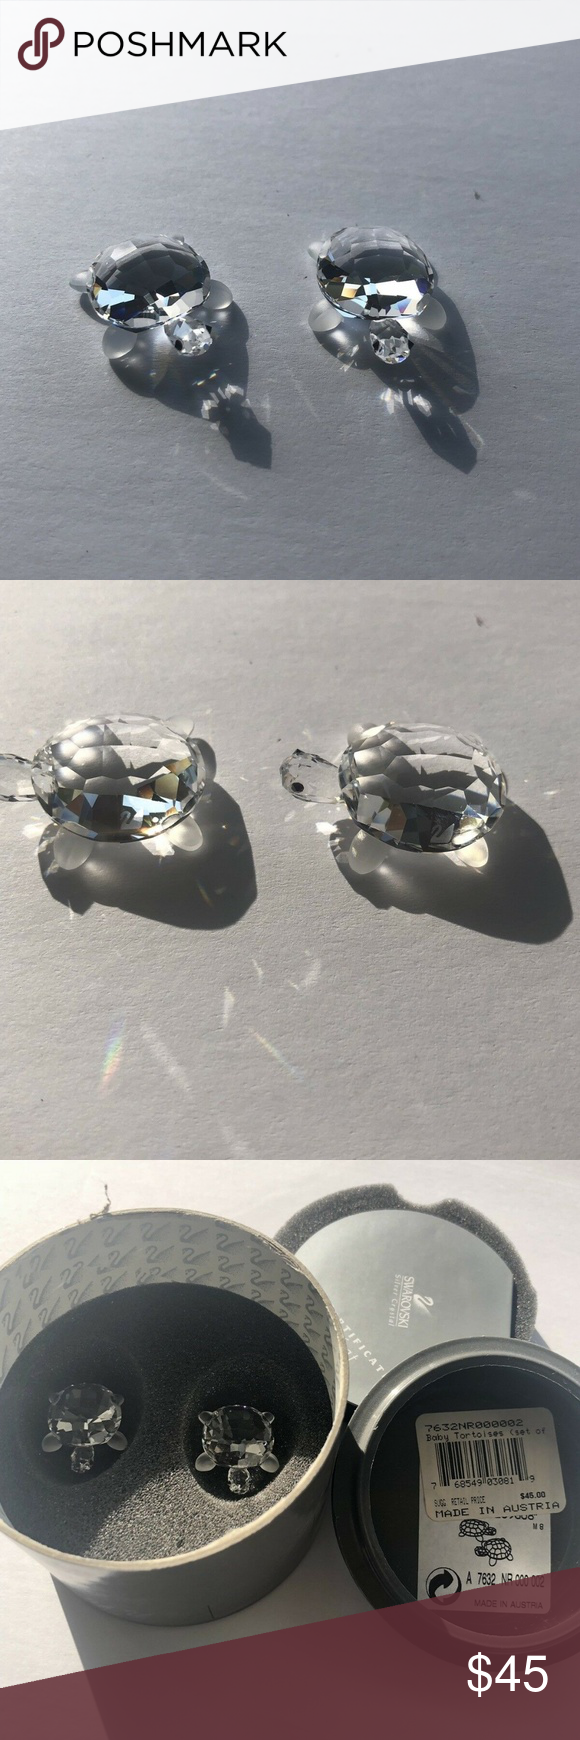 Swarovski Crystal Baby Tortoises Set Of 2 NIB Mint Baby